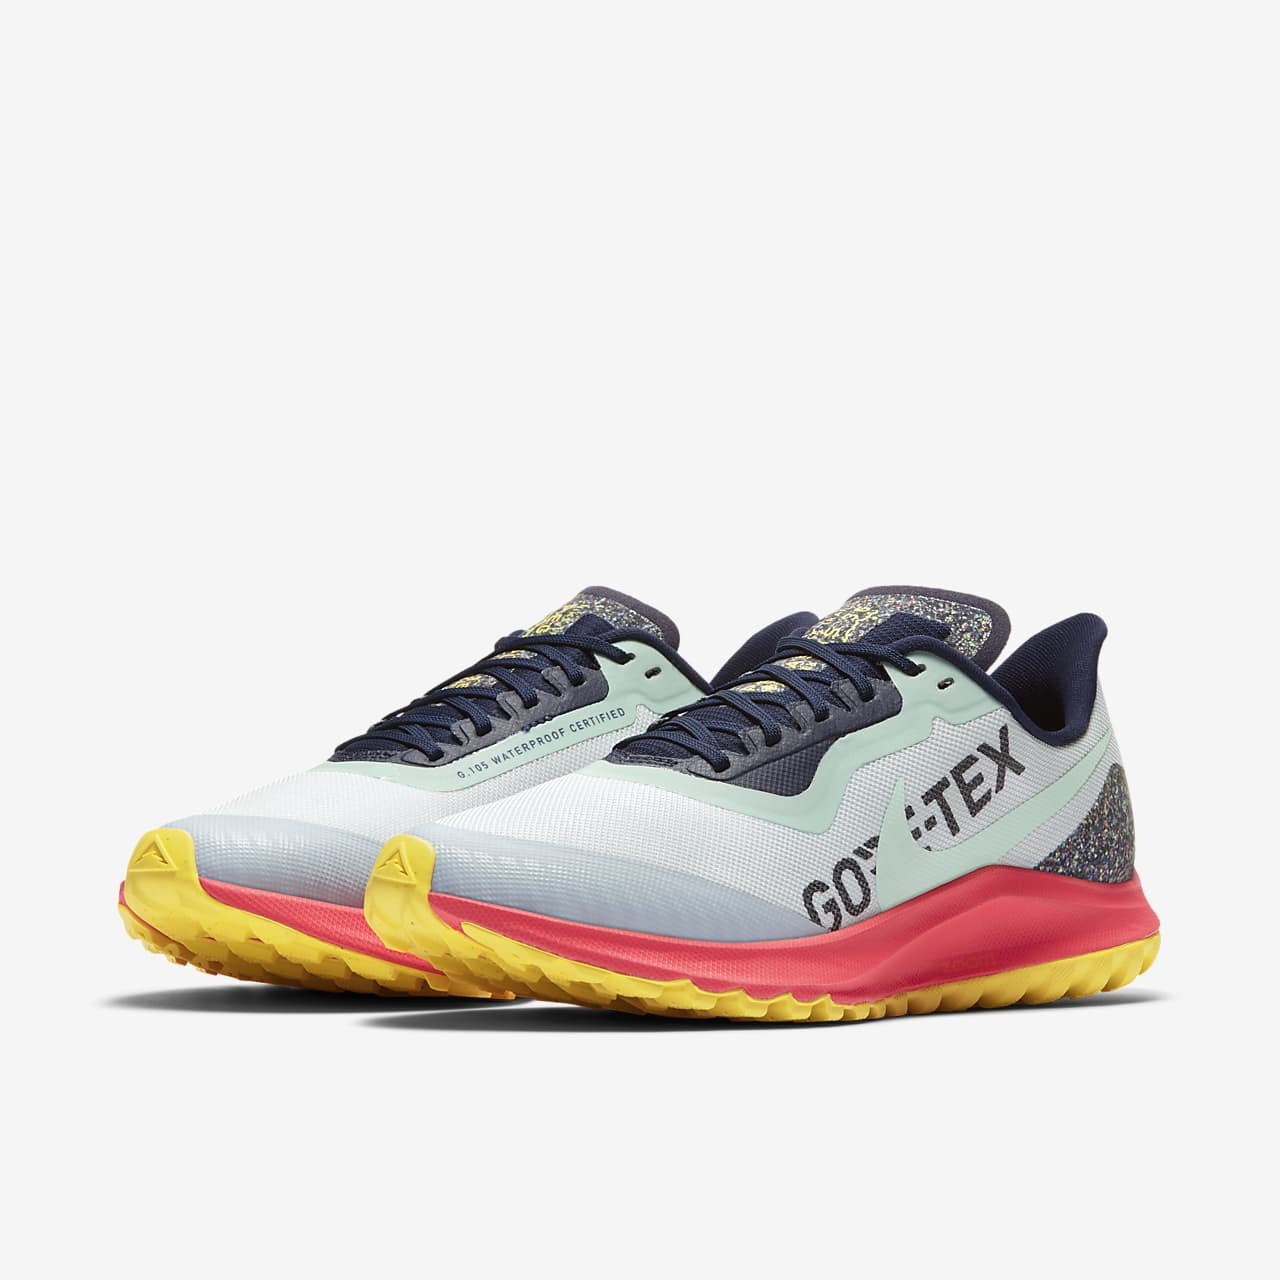 Nike Air Zoom Pegasus 36 Trail GORE-TEX Trailrunningschoen voor dames